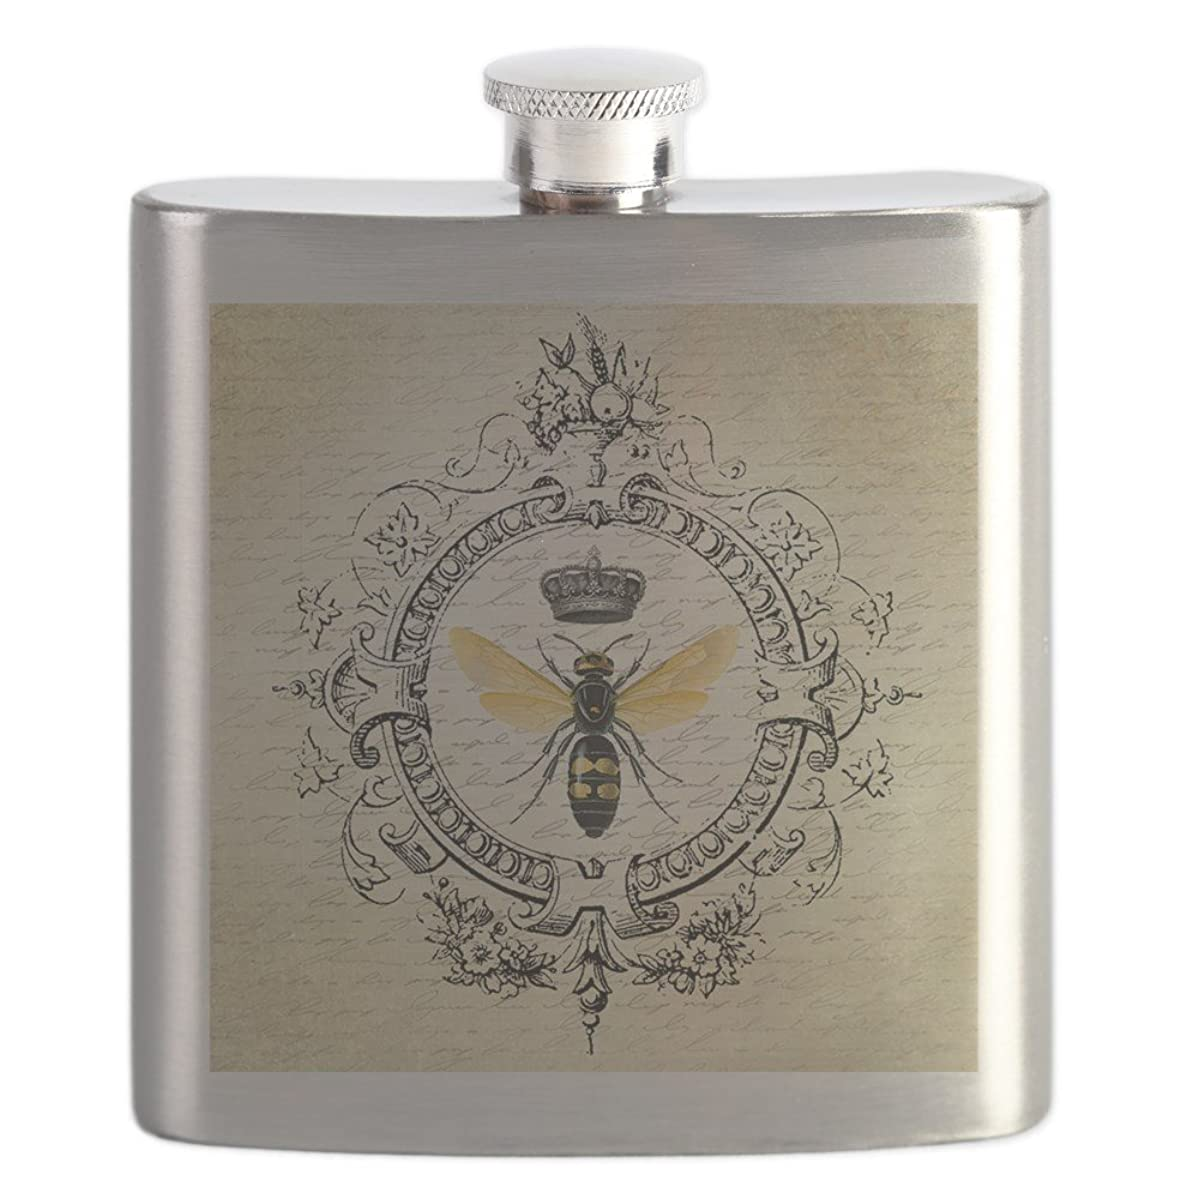 CafePress - Vintage French Queen Bee - Stainless Steel Flask, 6oz Drinking Flask